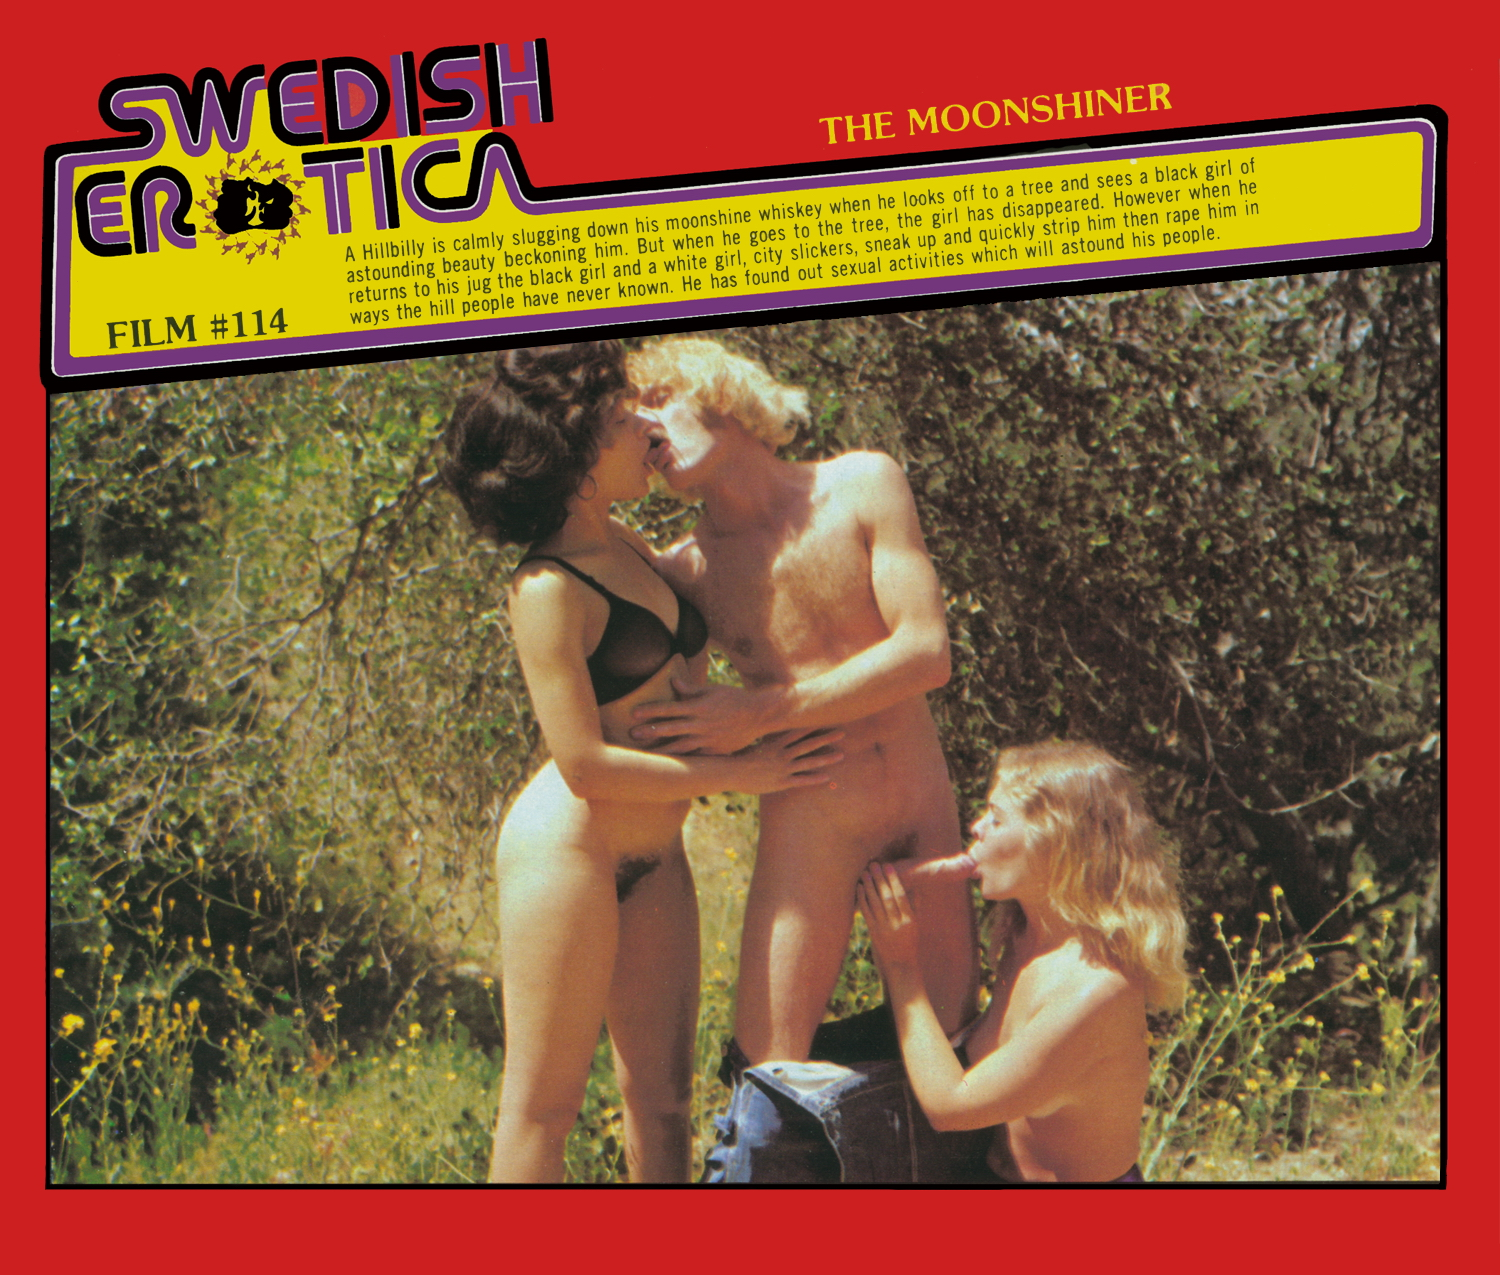 Swedish Erotica 114 - The Moonshiner